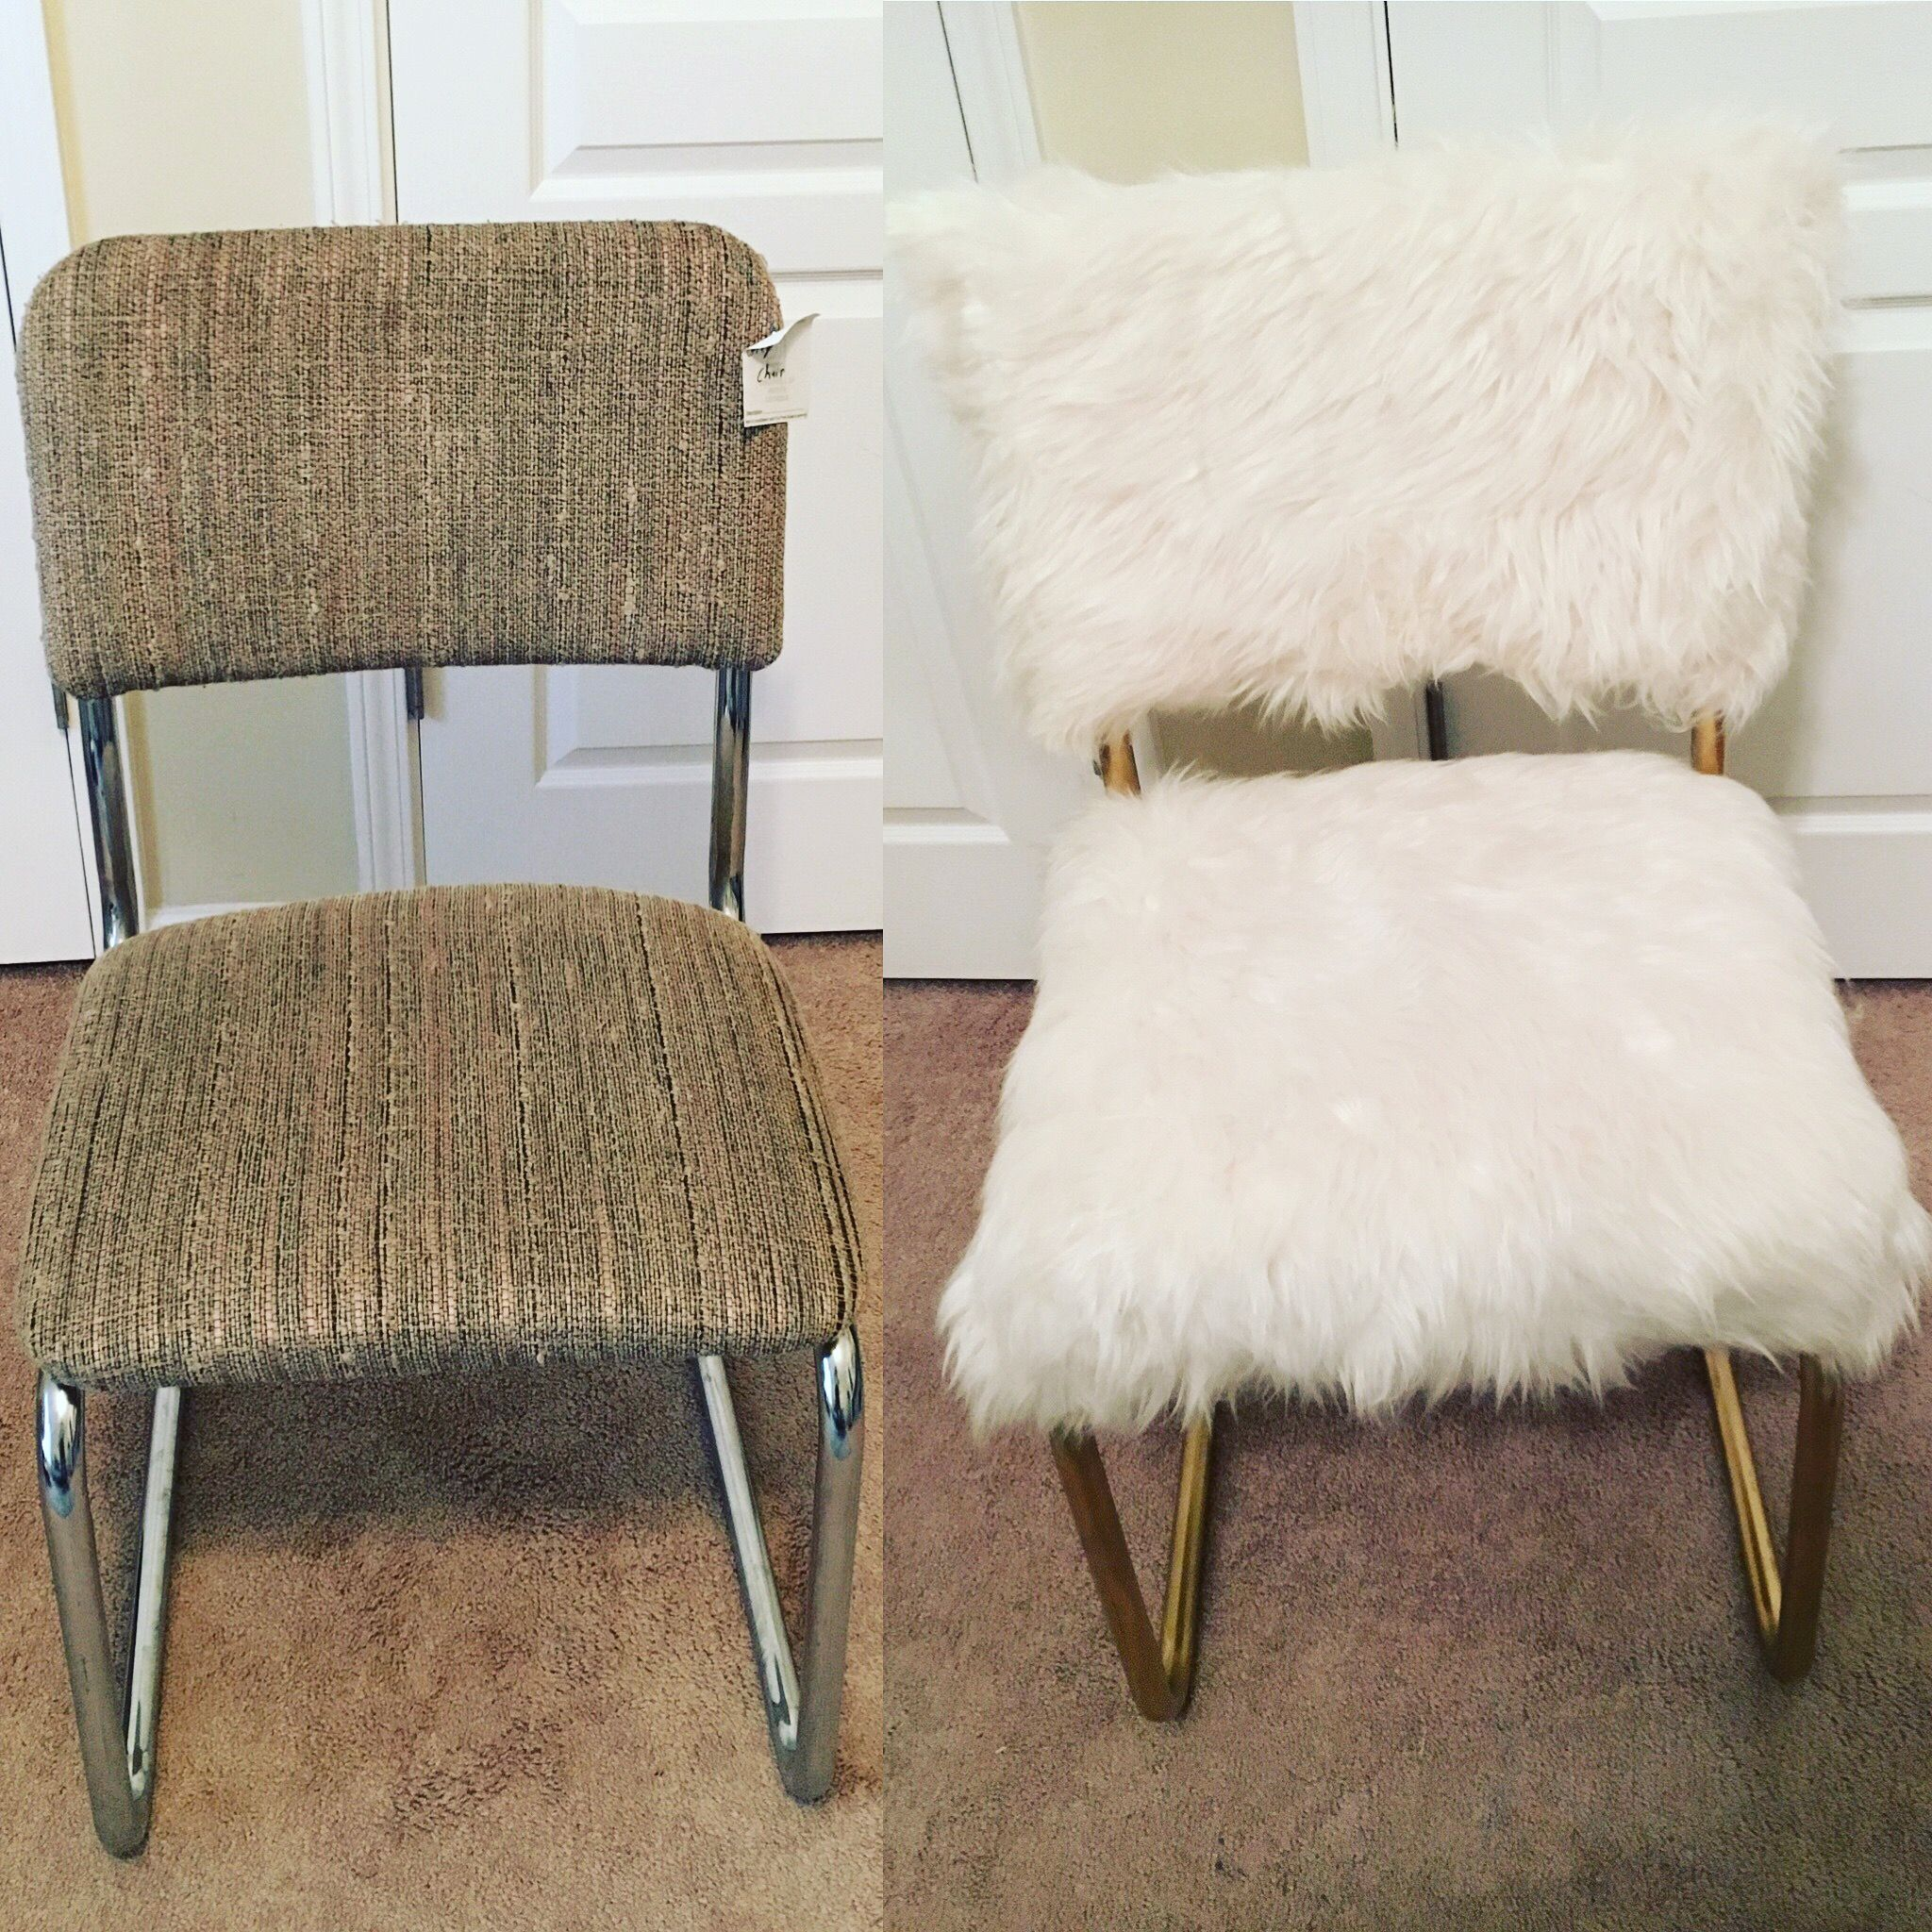 White And Gold Desk Chair Shabby 4 Goodwill Chair Transformed Into A Chic White And